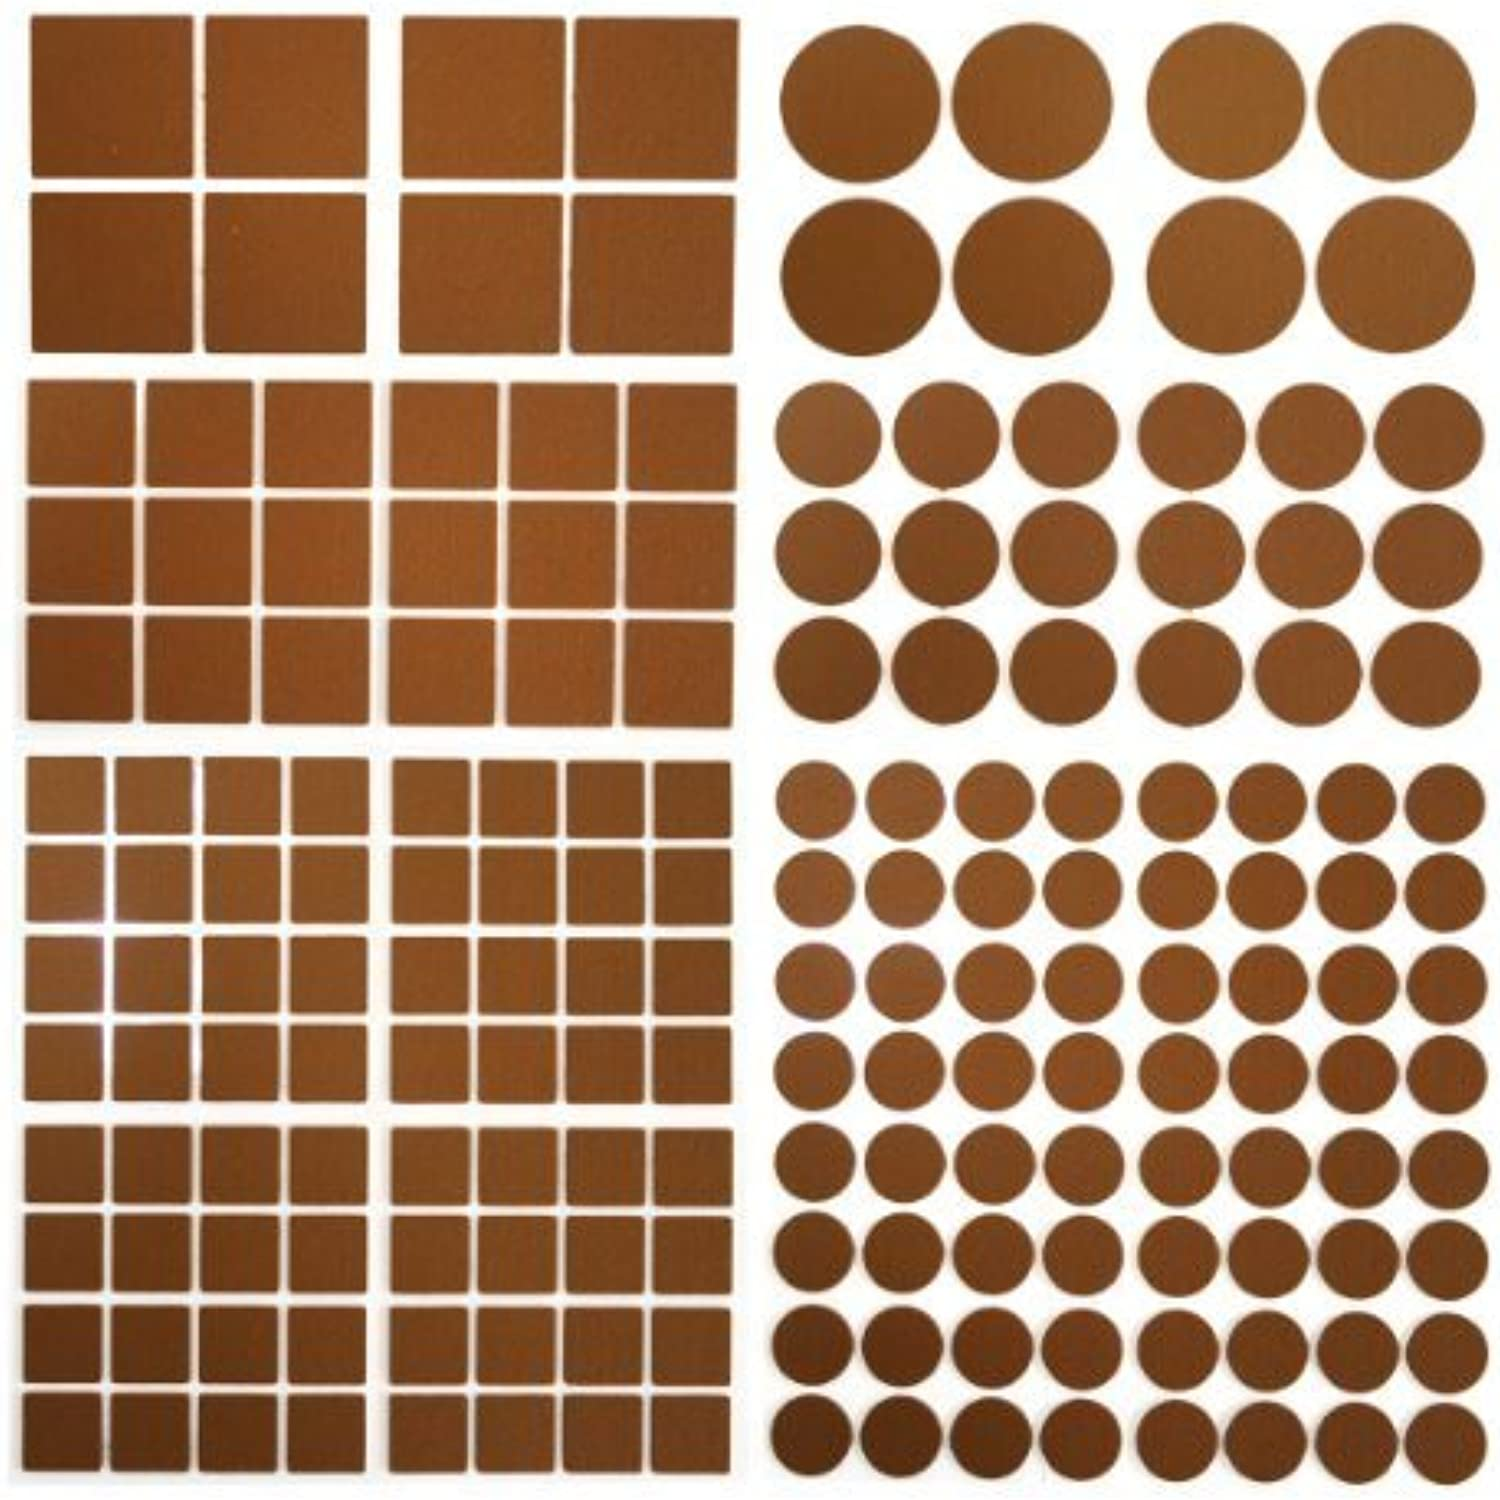 180Piece Anti-Skid Brown-Chair Leg Floor Predector Pads Felt Pad - Furniture (180pcs) by TheJD